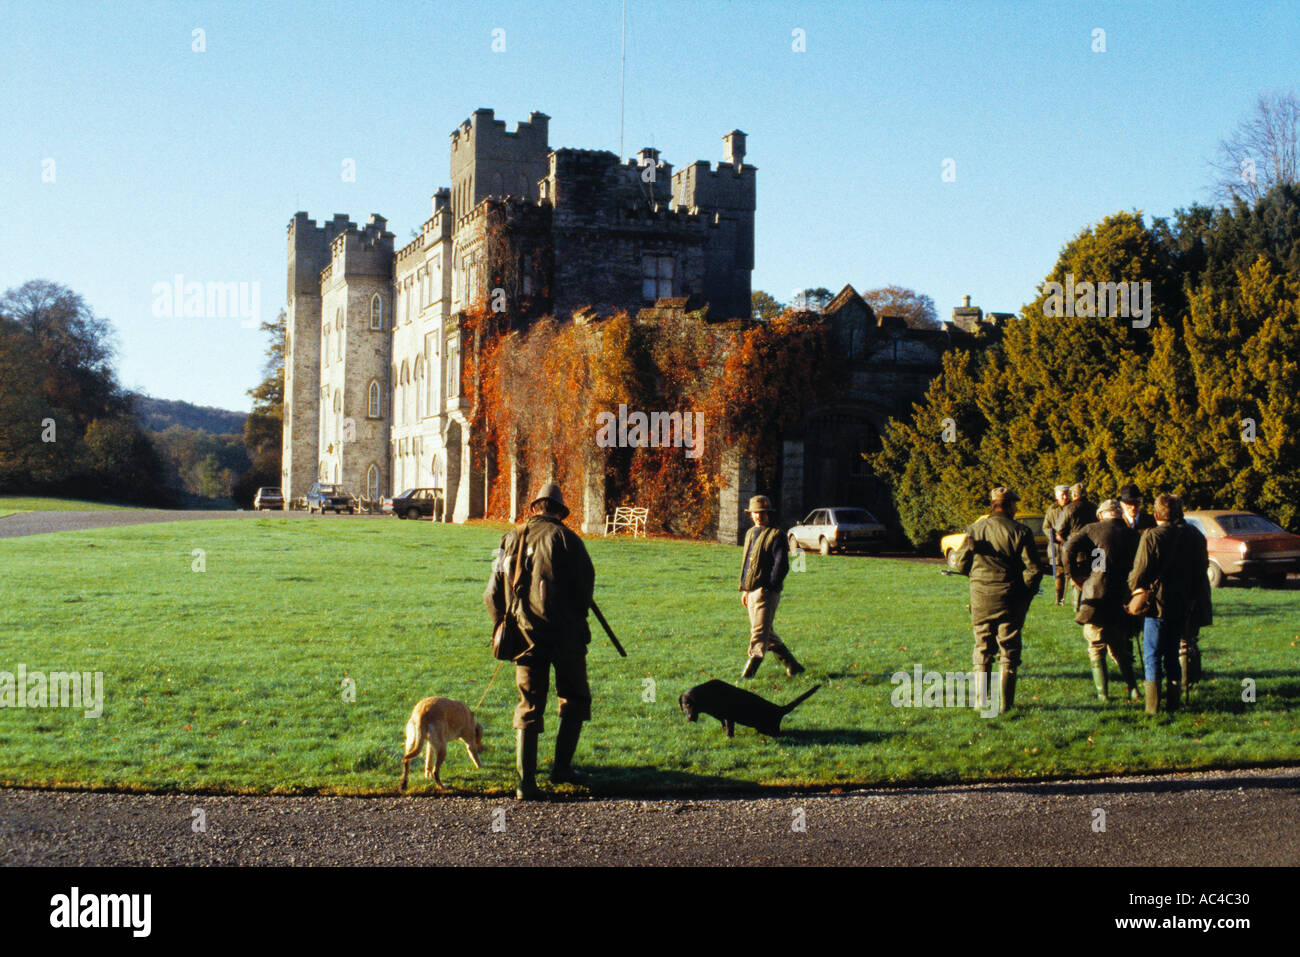 The guns returning for lunch at a driven game shoot on an estate in Ireland - Stock Image